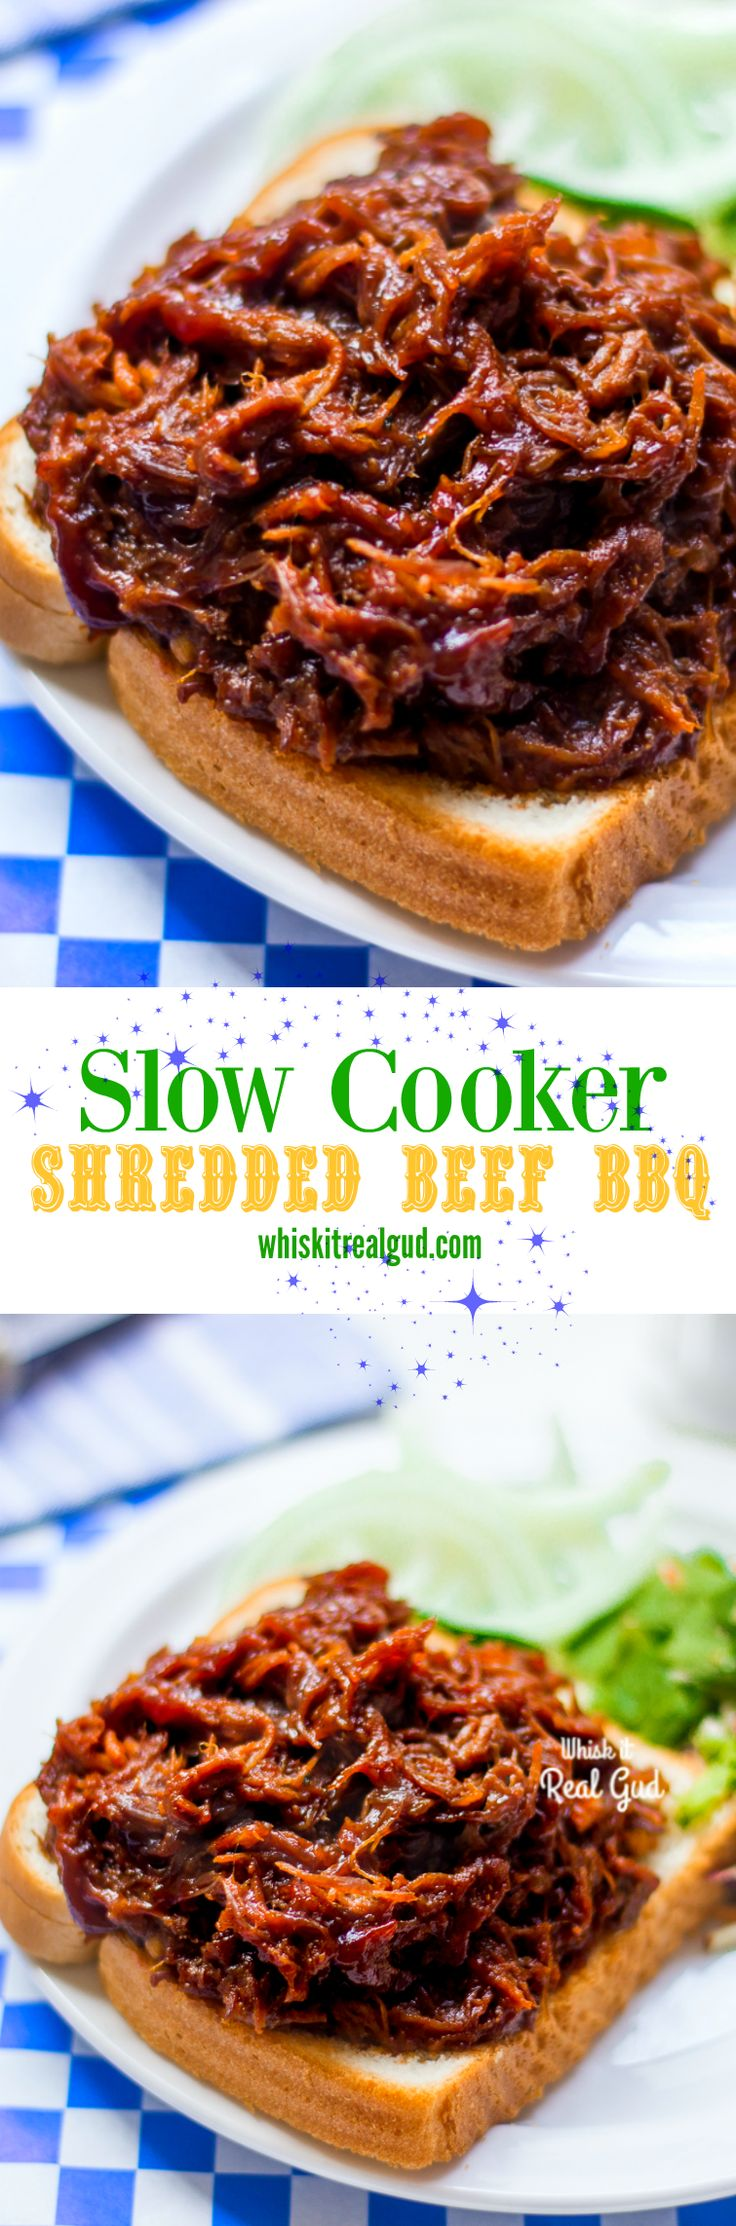 Rich, tender, juicy, saucy, tangy, flavorful and easy Slow Cooker Beef BBQ Sandwich!